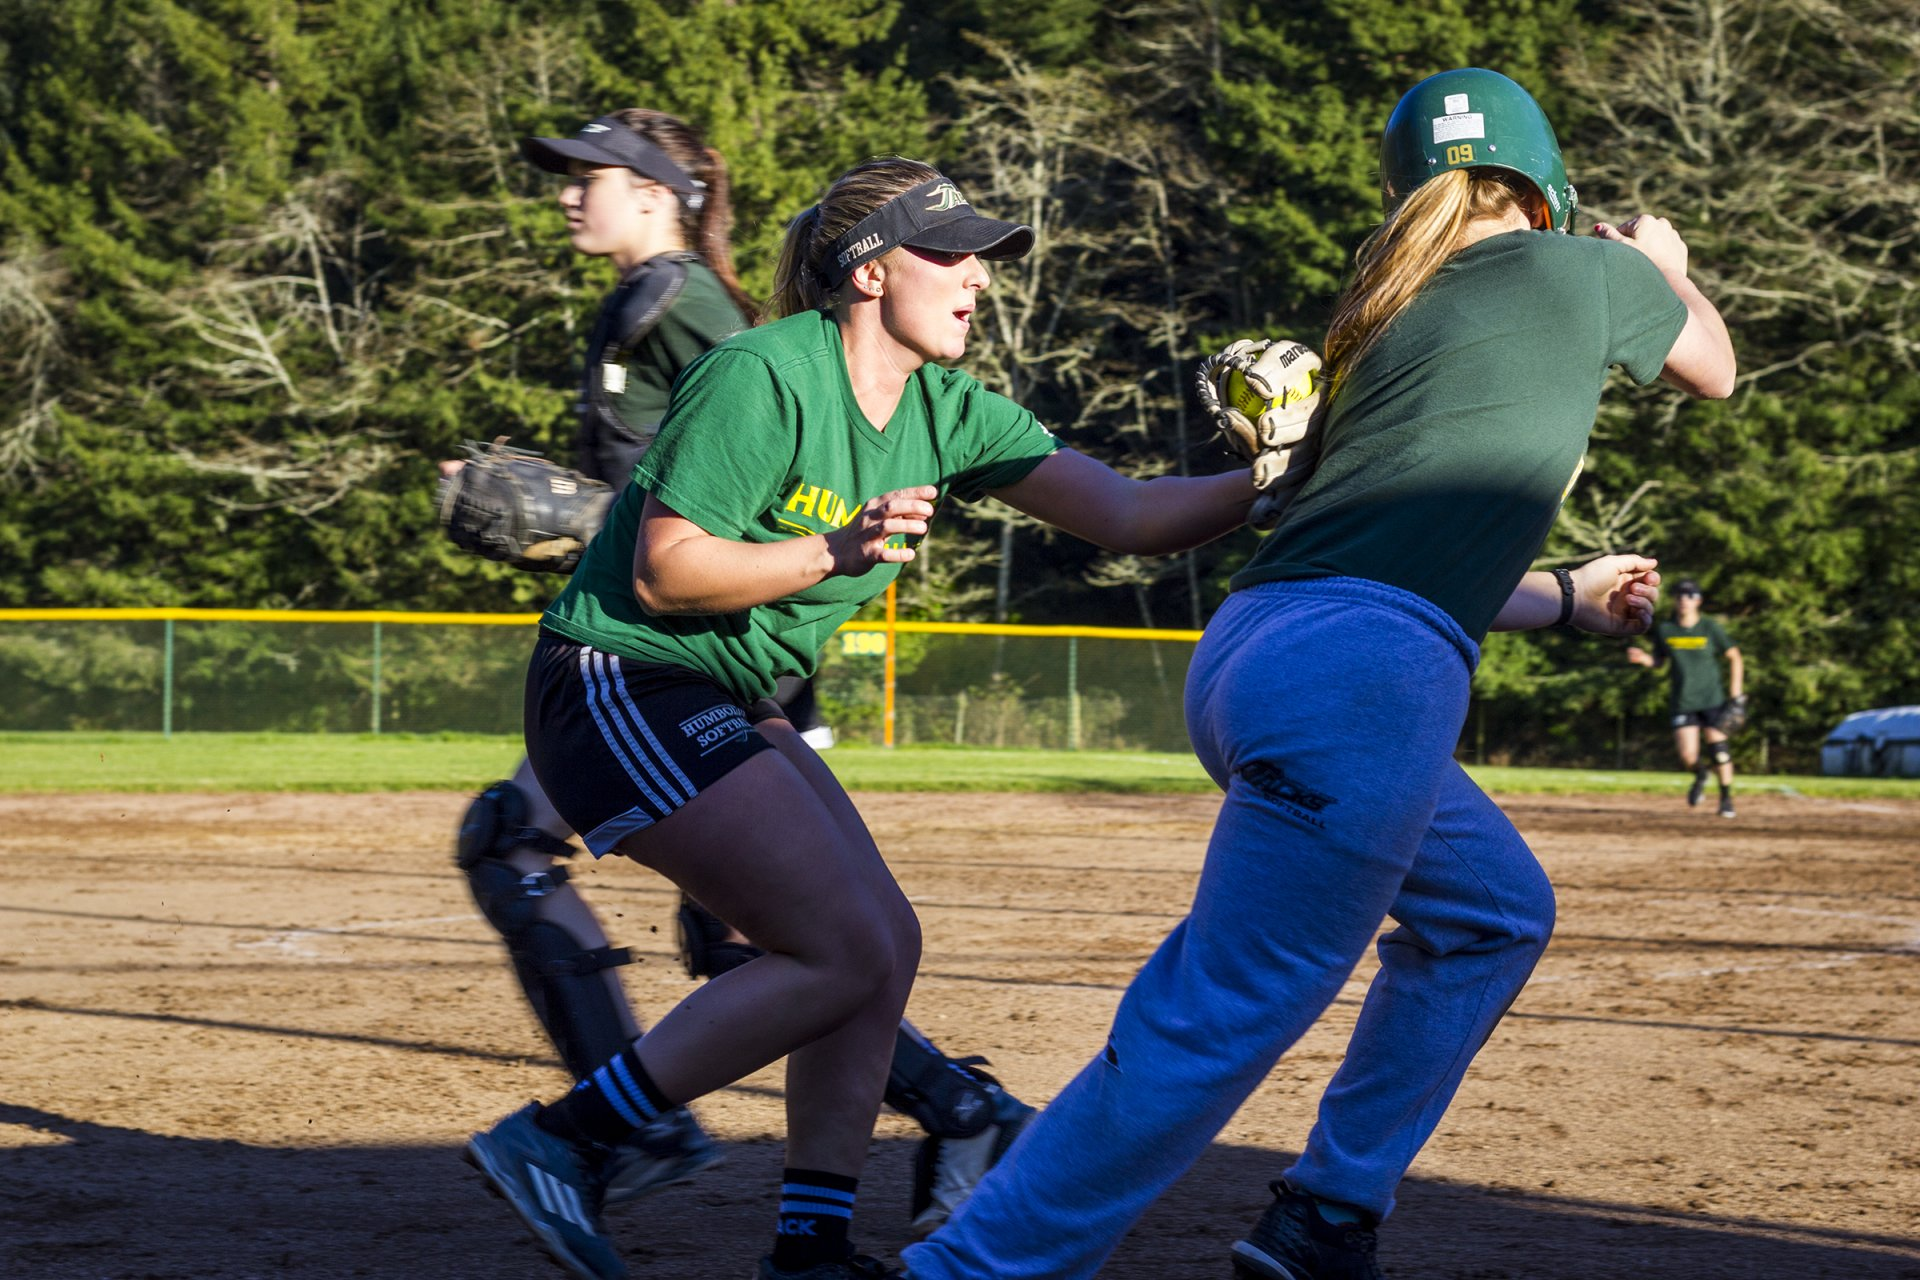 Rachel Barker (center) tags a teammate rounding third base during practice for the Humboldt State University softball team on Feb. 13. Photo by Diego Linares.